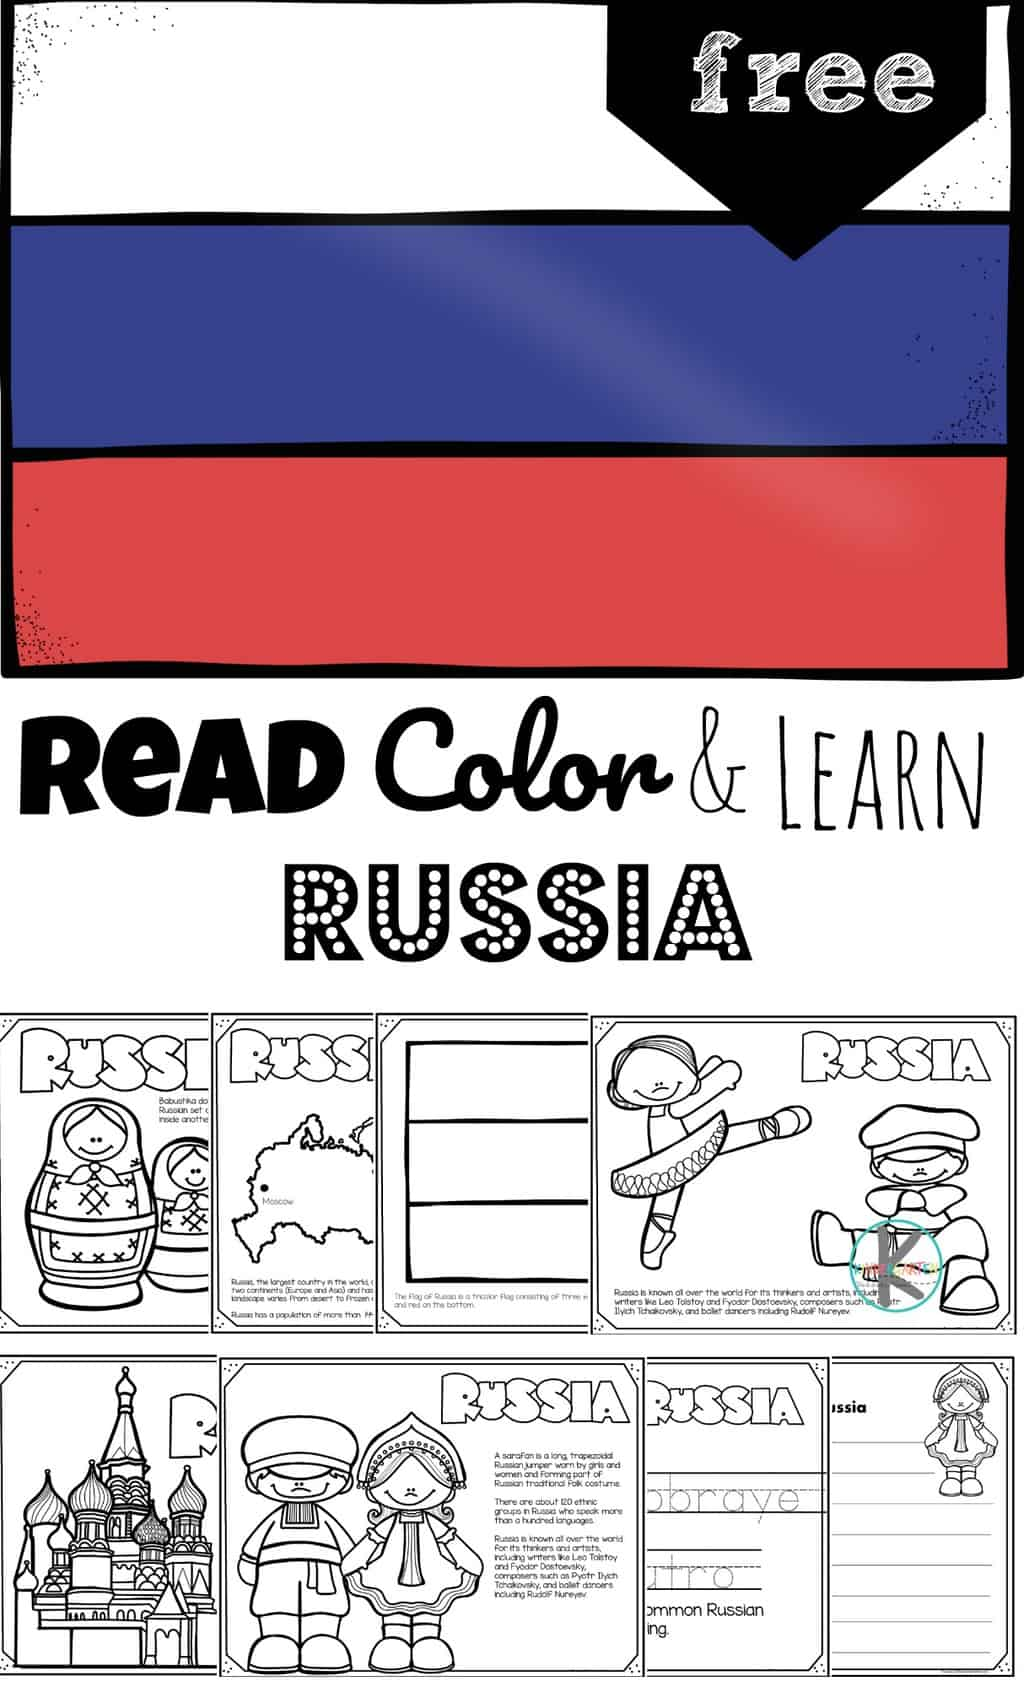 FREE Read Color and Learn about RUSSIA